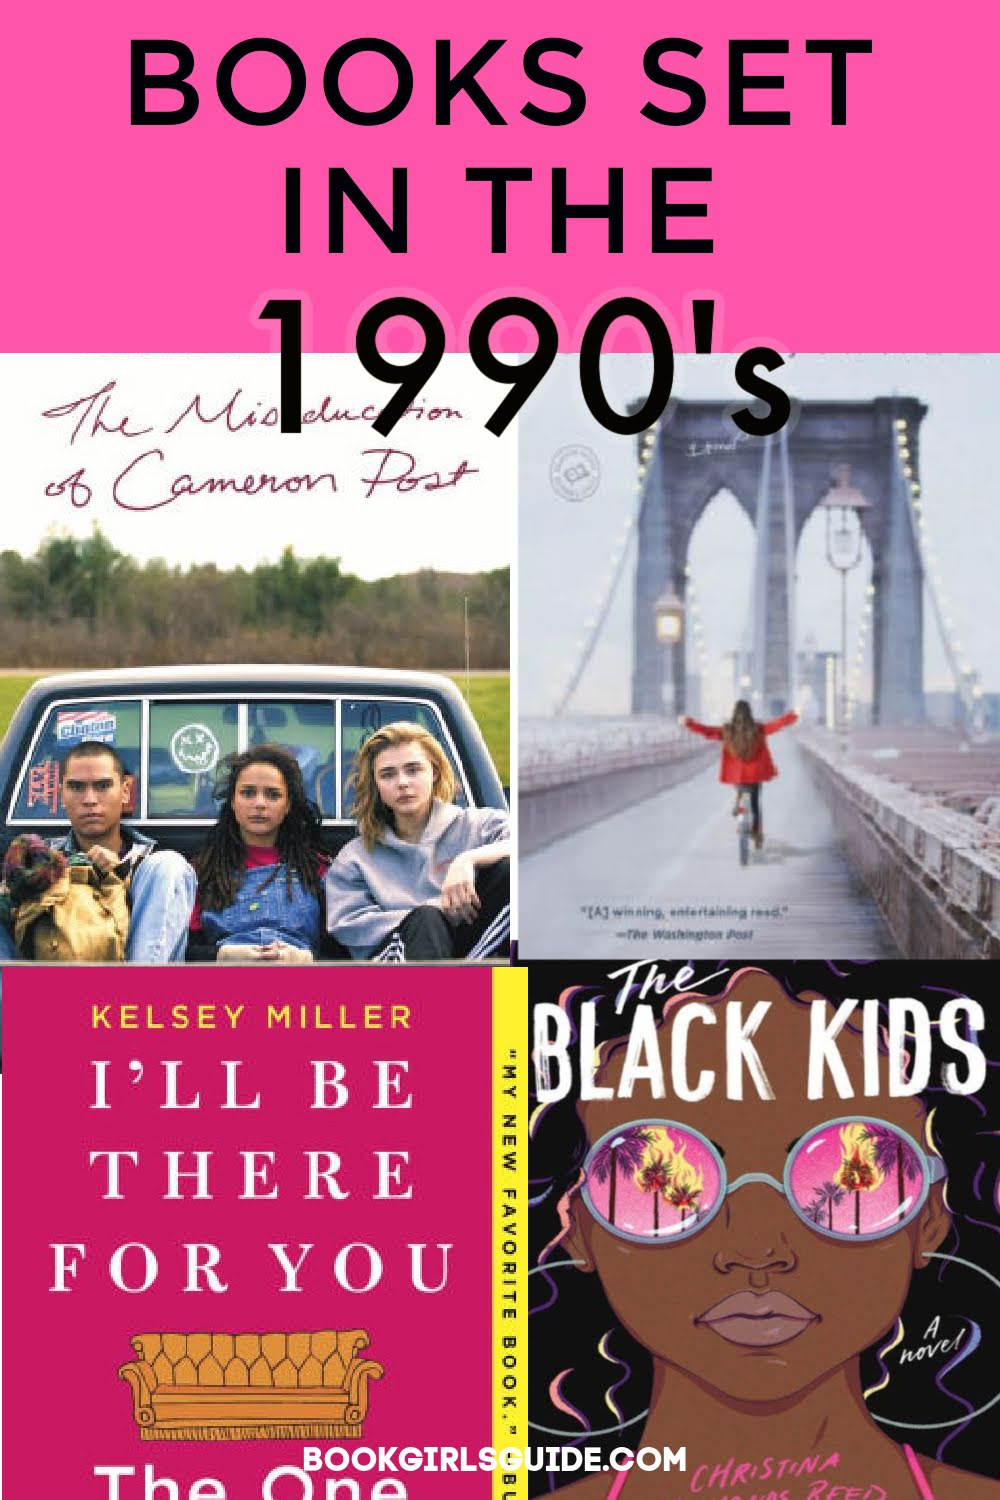 The Best Books Set in the 1990s - Text over book covers of The Black Kids, I'll be There For You, Someday, Maybe.